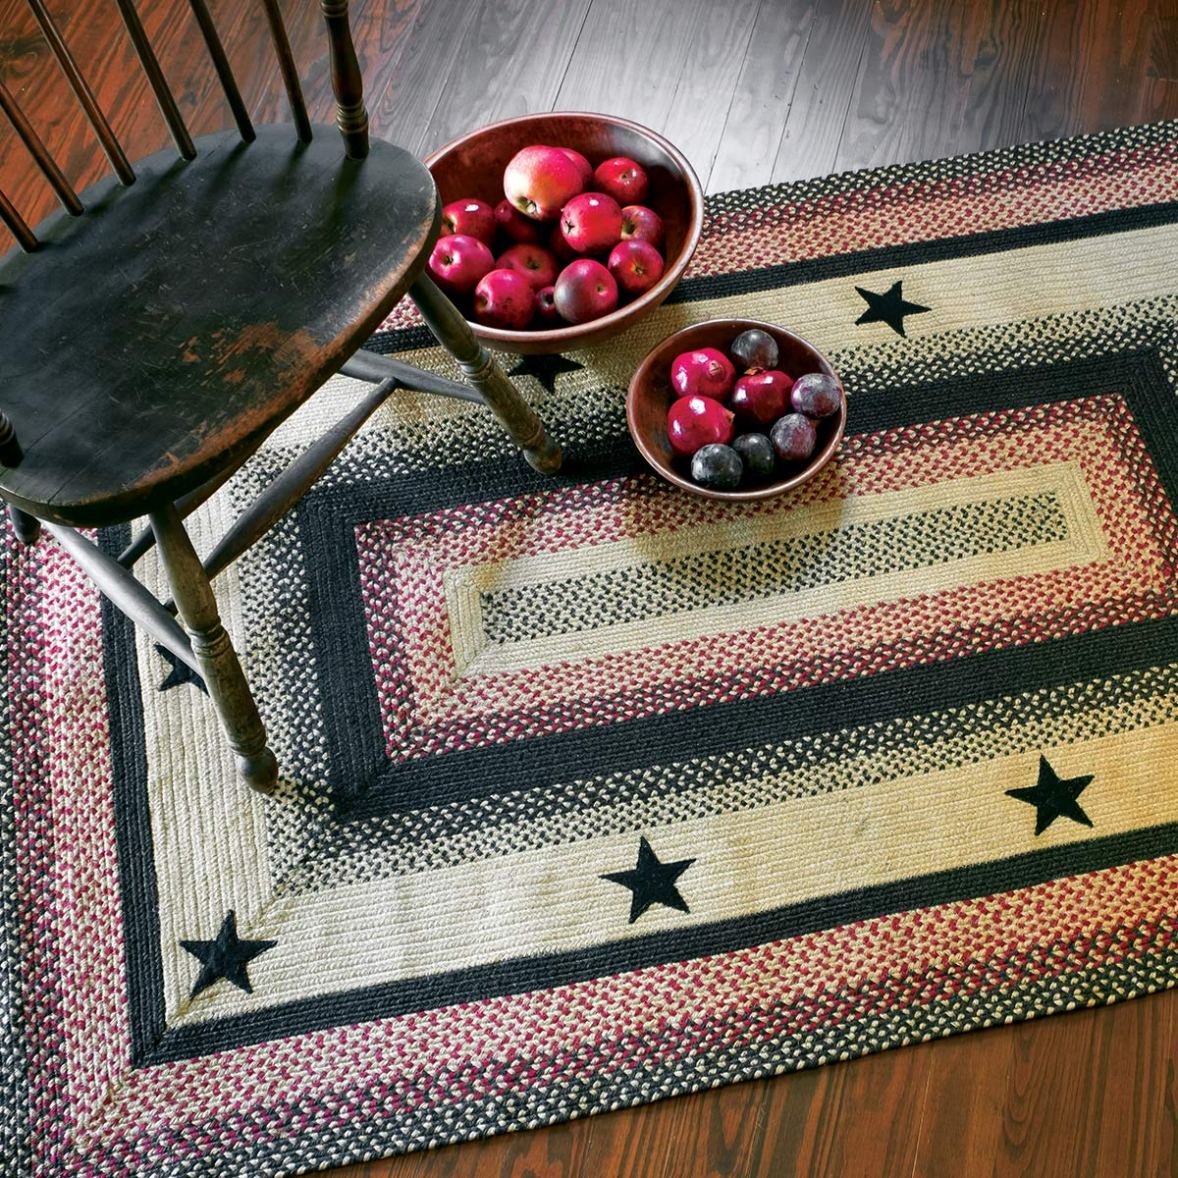 HomespiceDecorIntroducesTheirNewRugsCollectionFor